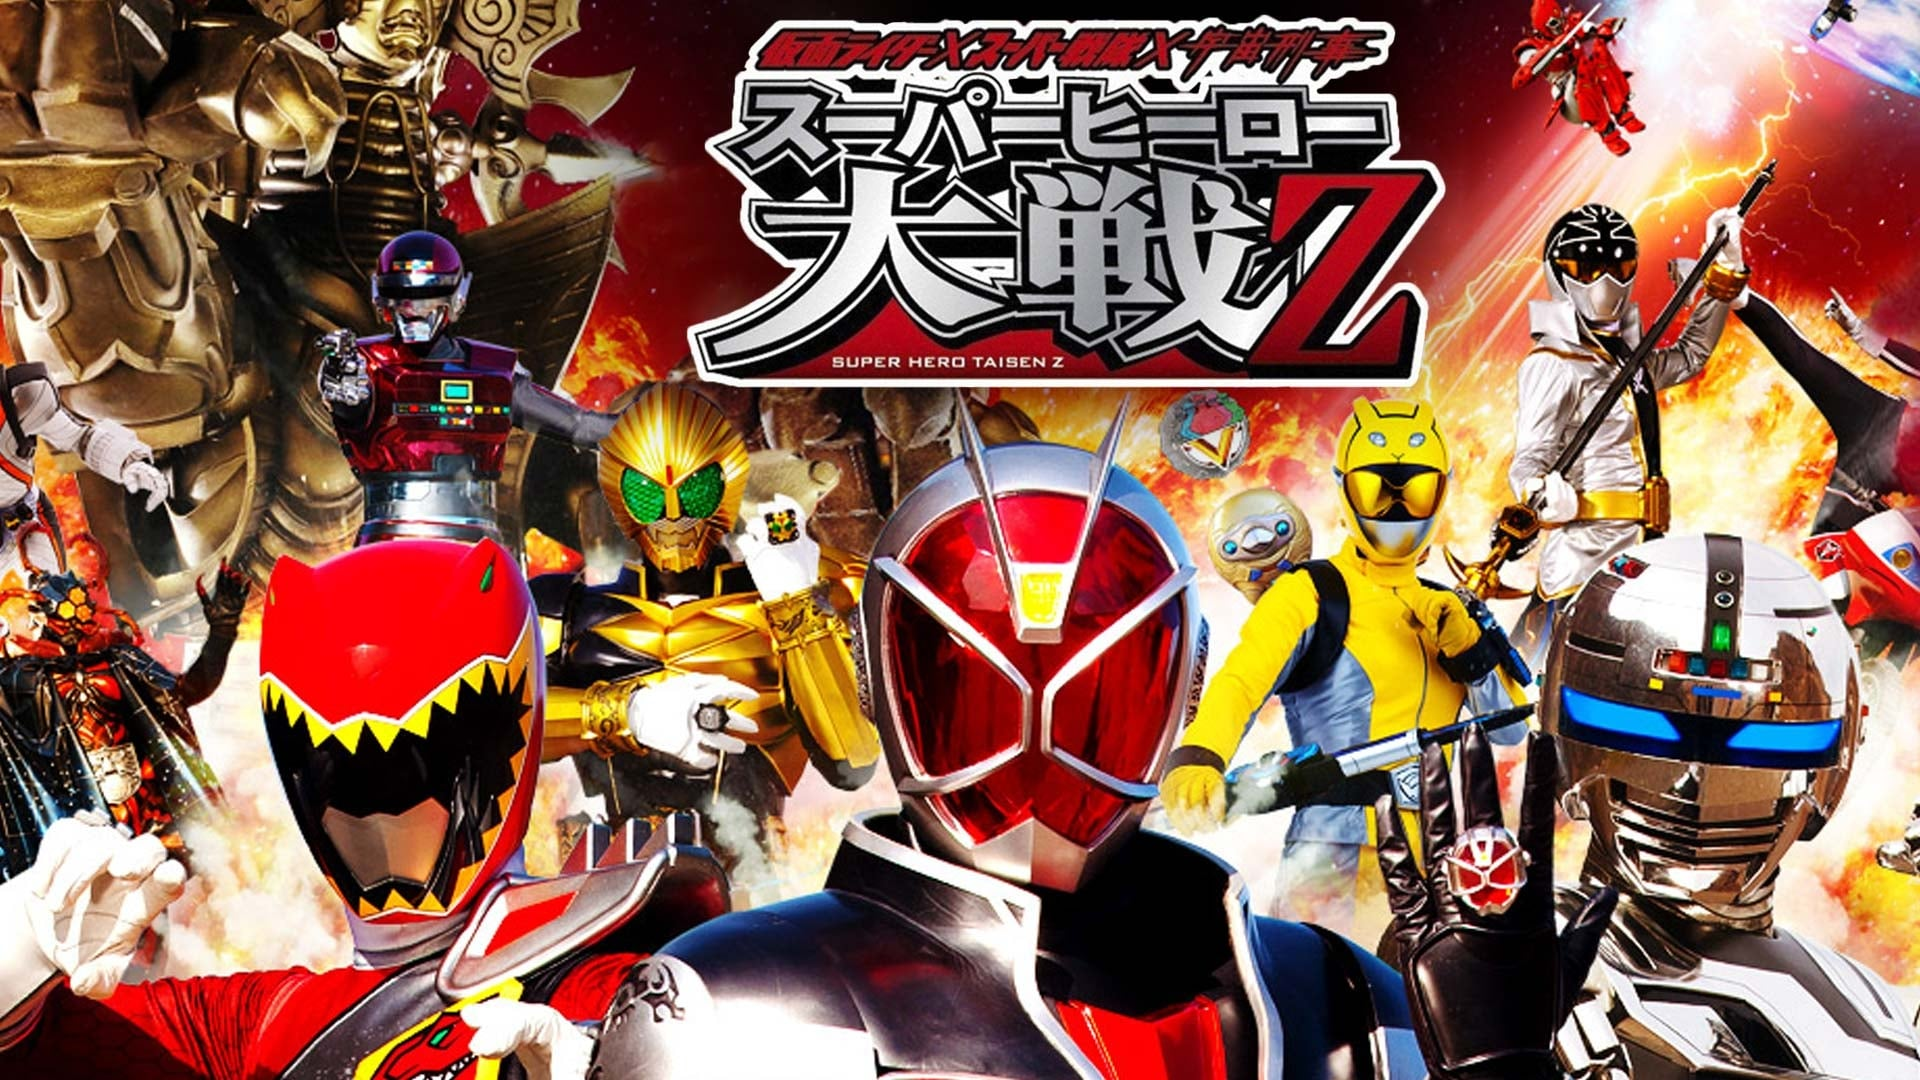 Kamen Rider × Super Sentai × Space Sheriff: Super Hero Taisen Z